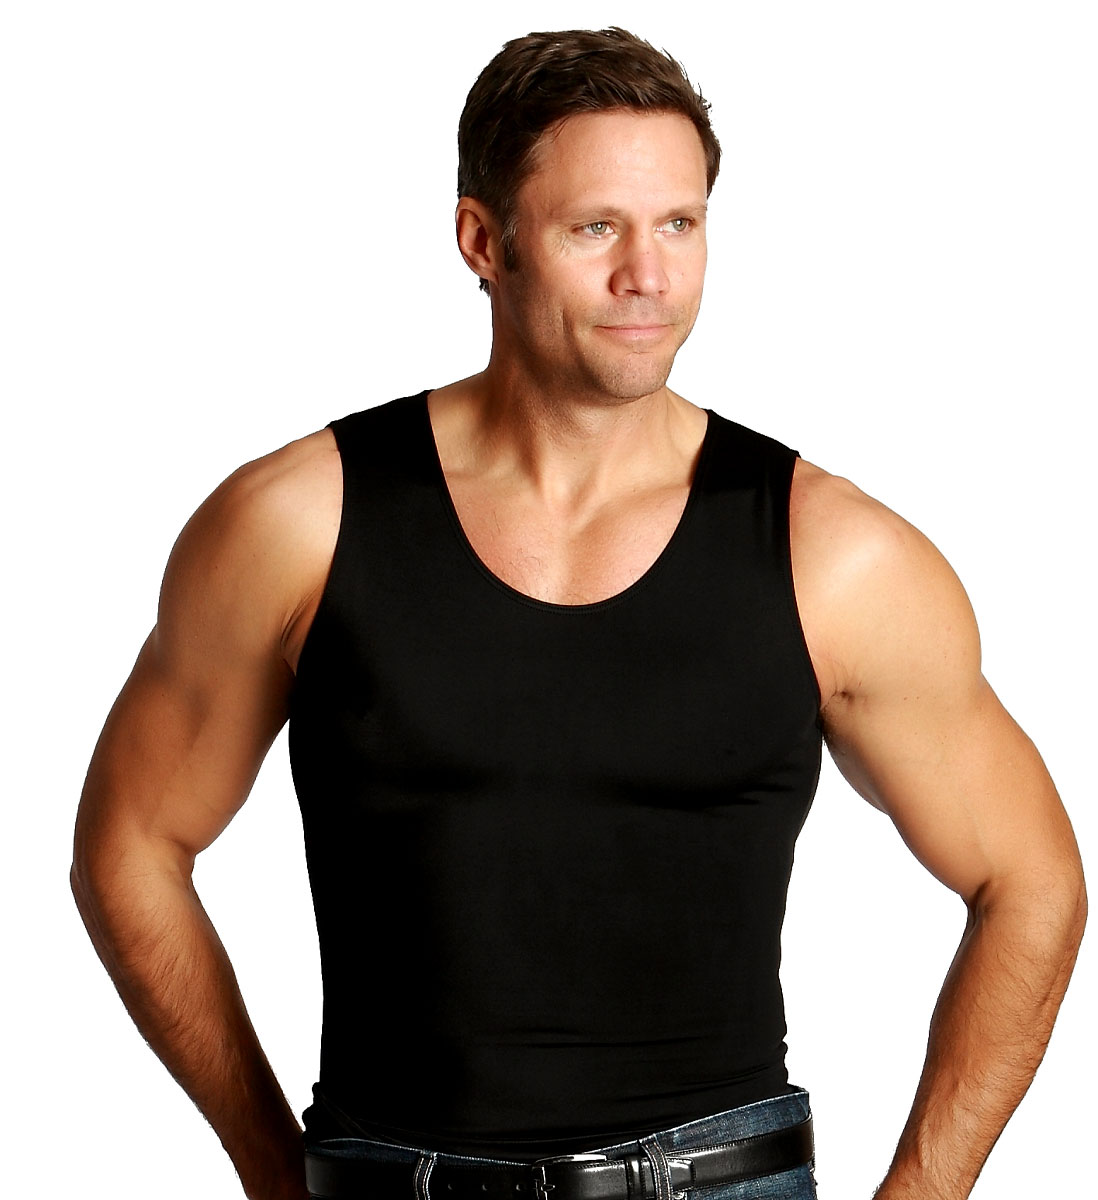 Insta Slim Men's Black Muscle Tank Firming Toning Compression Under Shirt (S)